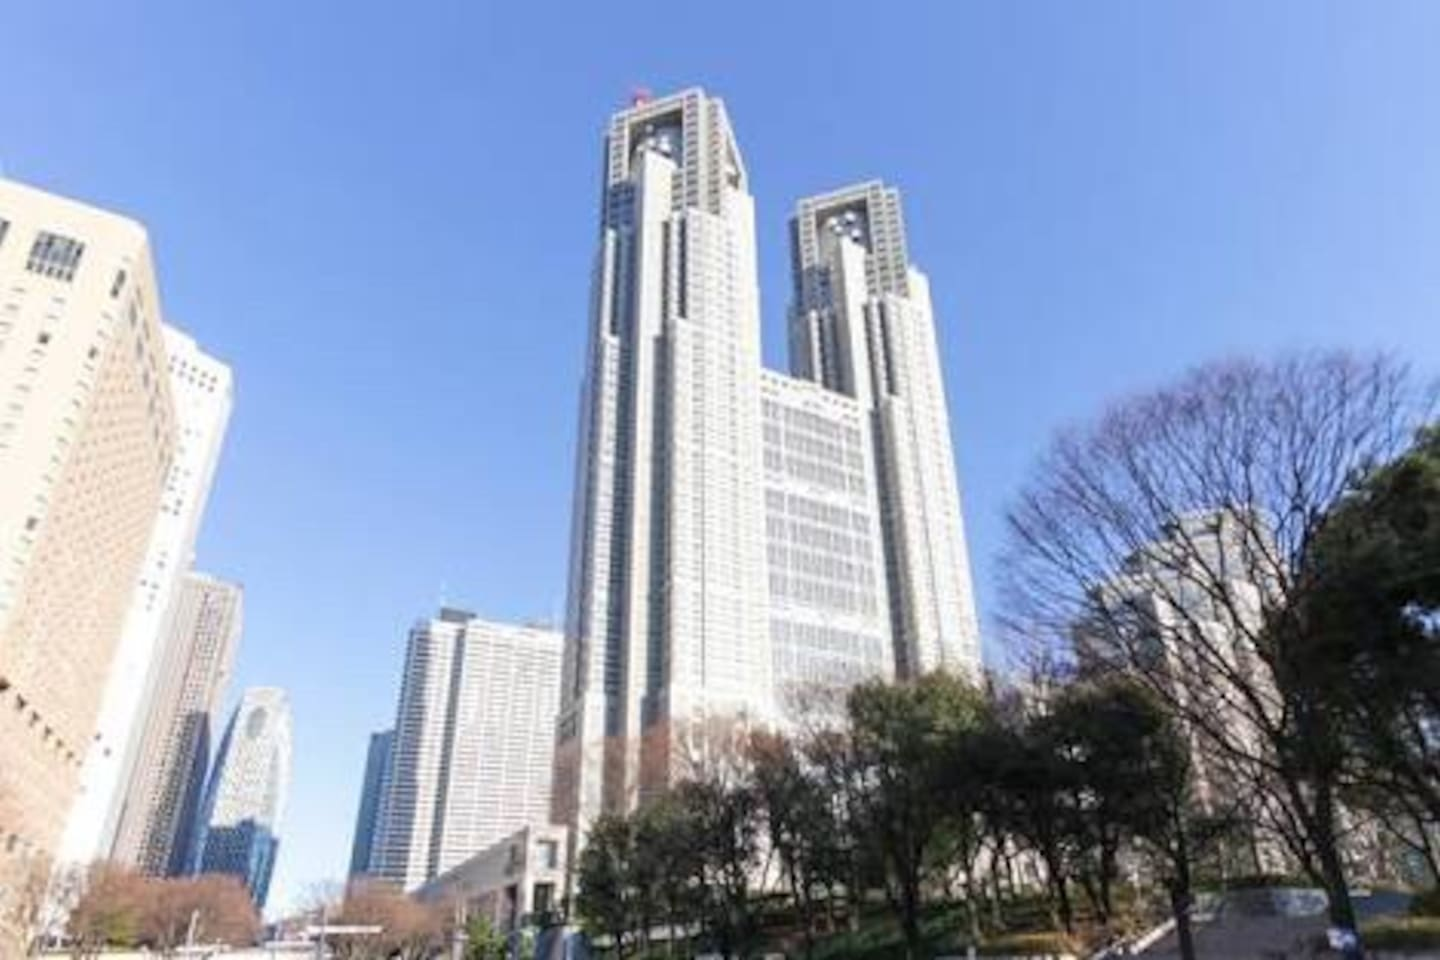 You can see Tokyo metropolitan building from balcony.